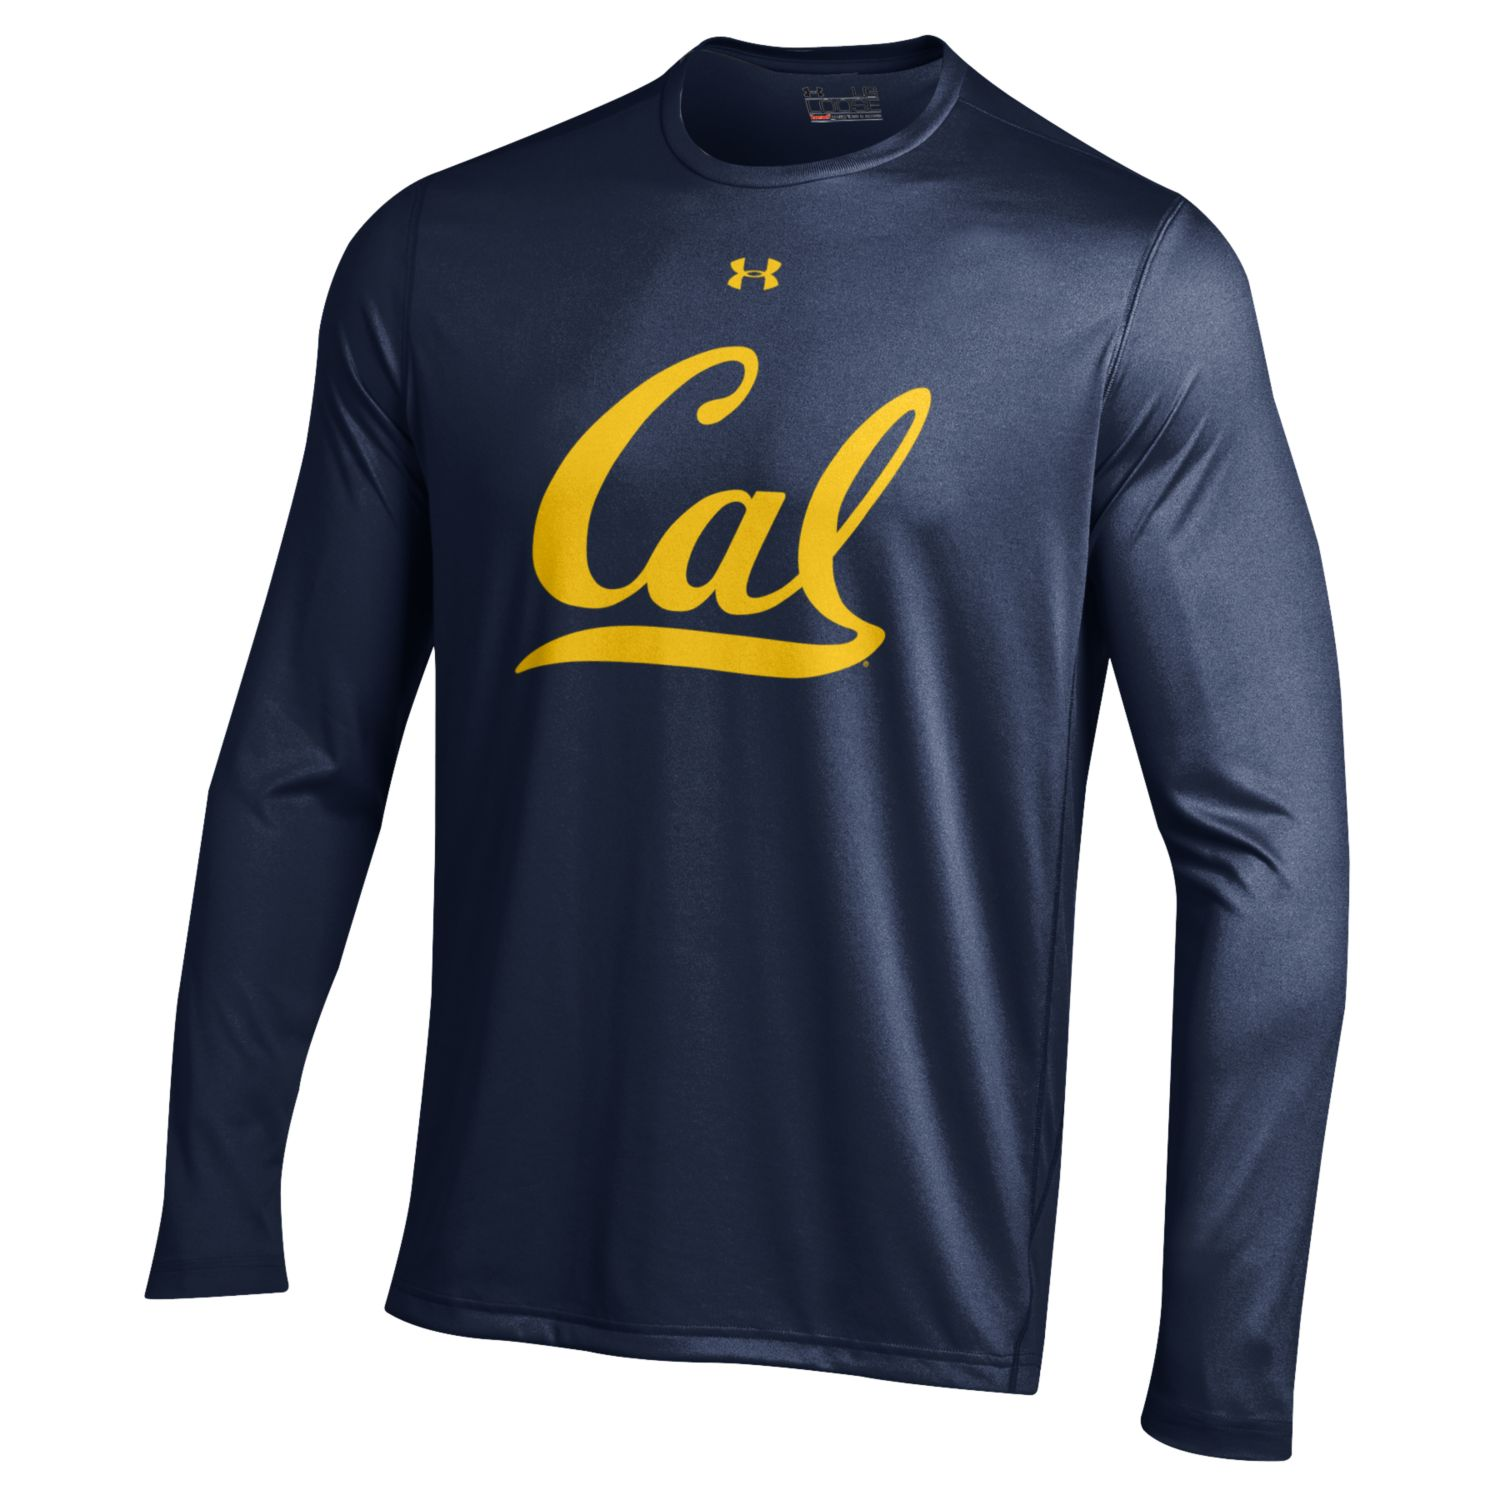 University of California Berkeley Under Armour Men's LS Tech Tee Cal Logo